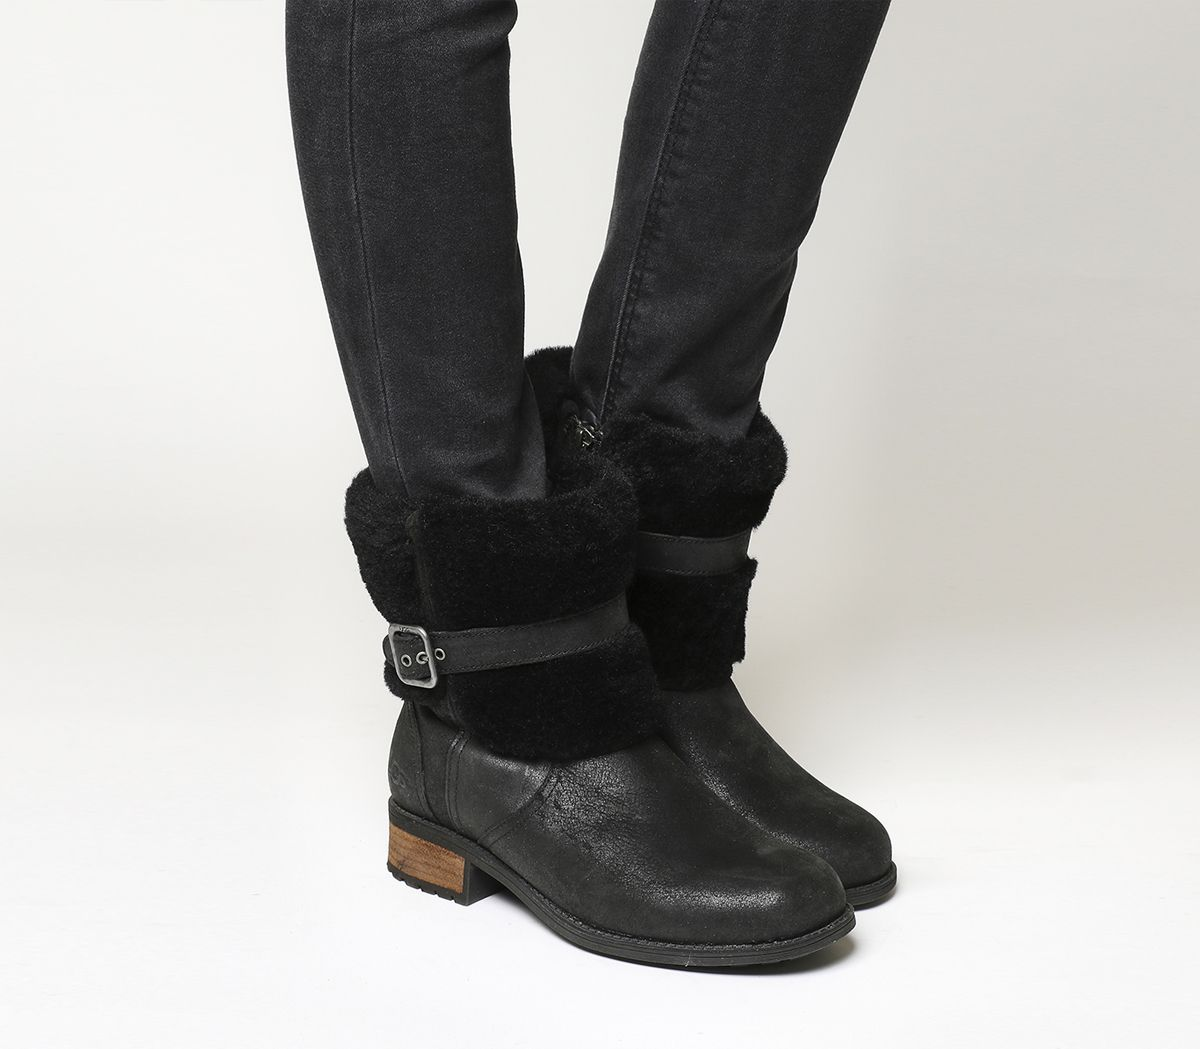 aec0e621dfc Blayre II Shearling Boots